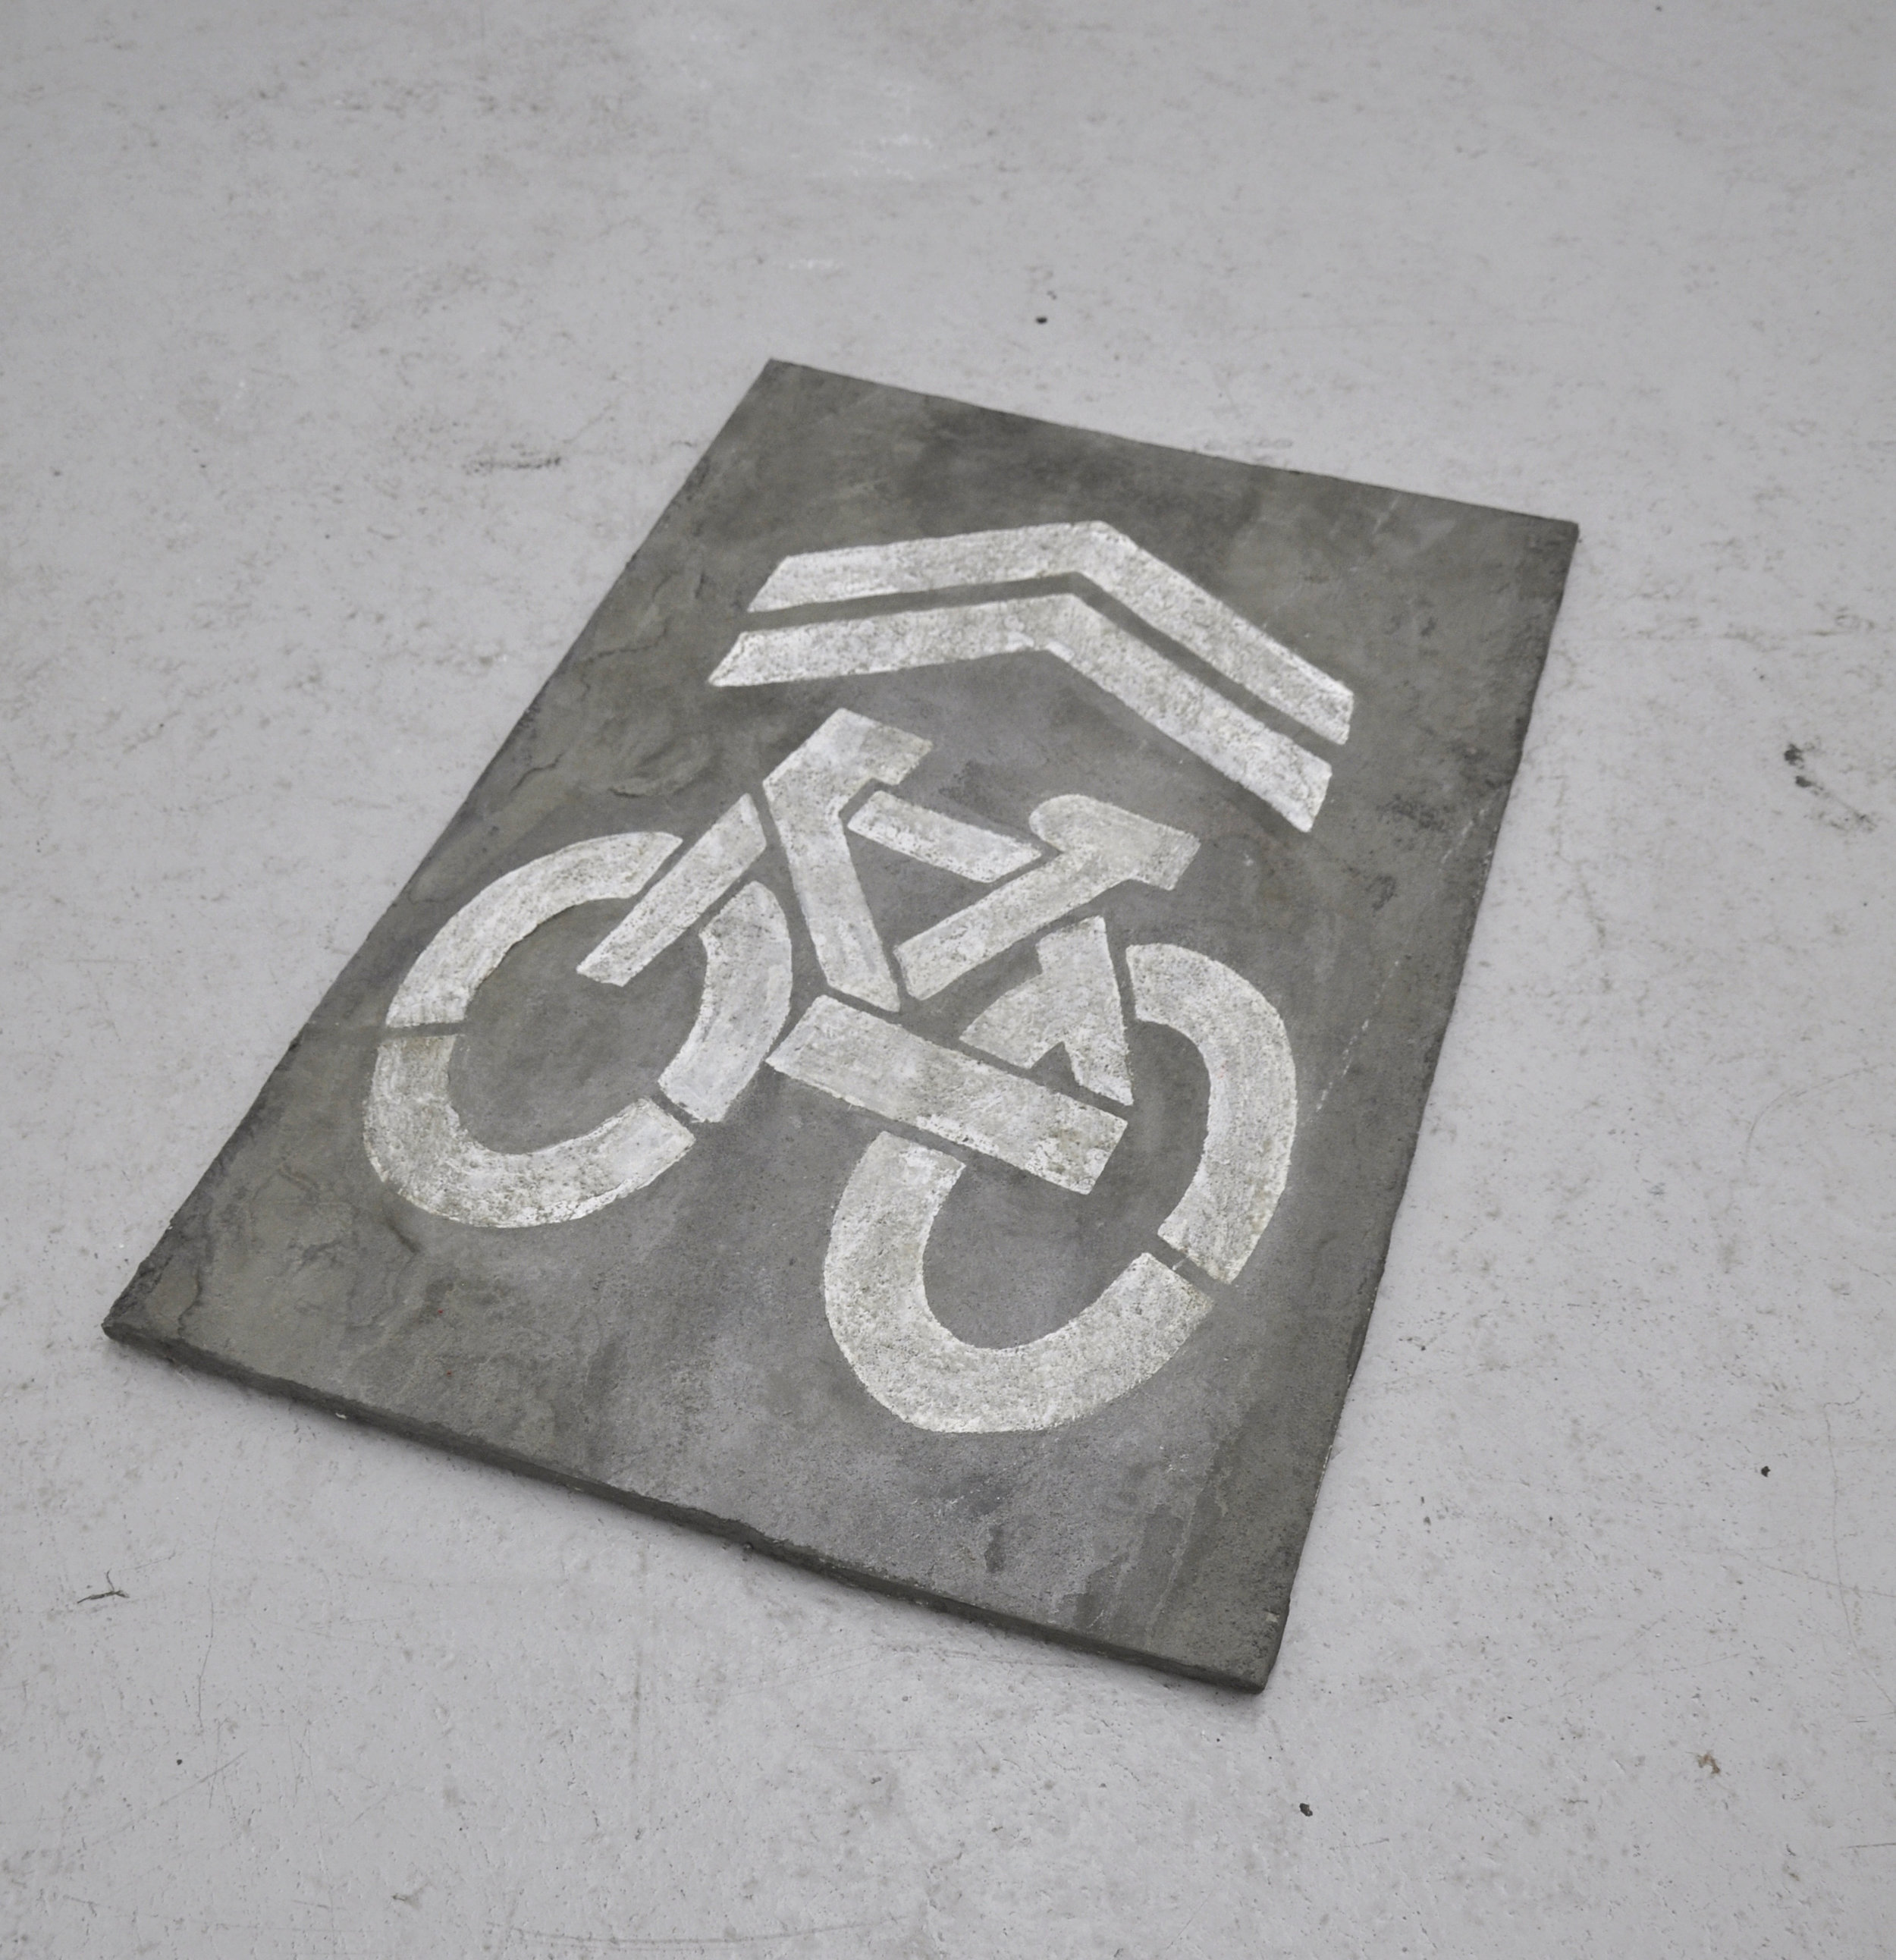 Malcolm Kenter, Bike Lane, 2018, Enamel on Concrete, Wood, 32 x 50.5 x 1 in